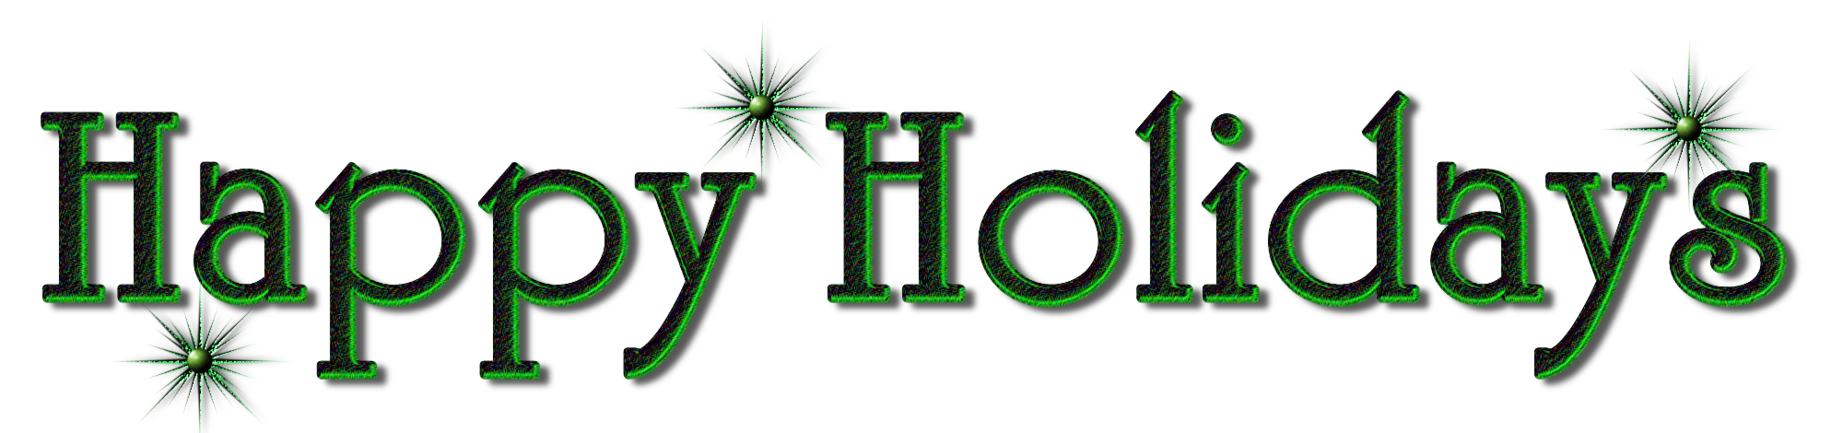 Happy Holidays Banner Png image #34711